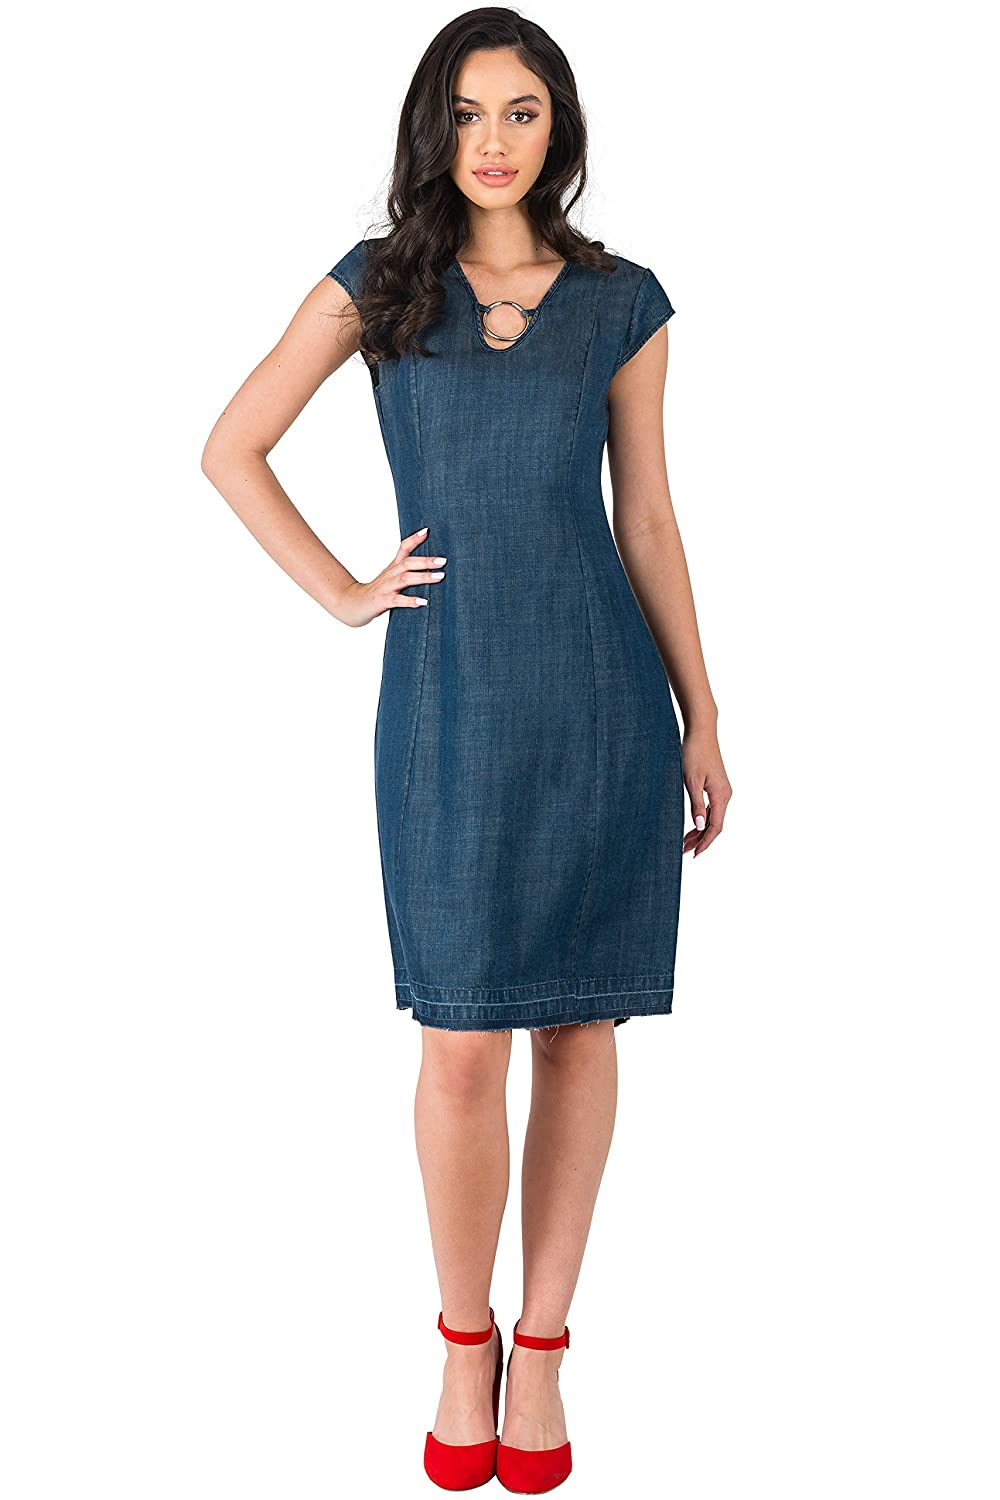 Standards & Practices Modern Women Cap Sleeve Denim Tencel Princess Sheath Dress